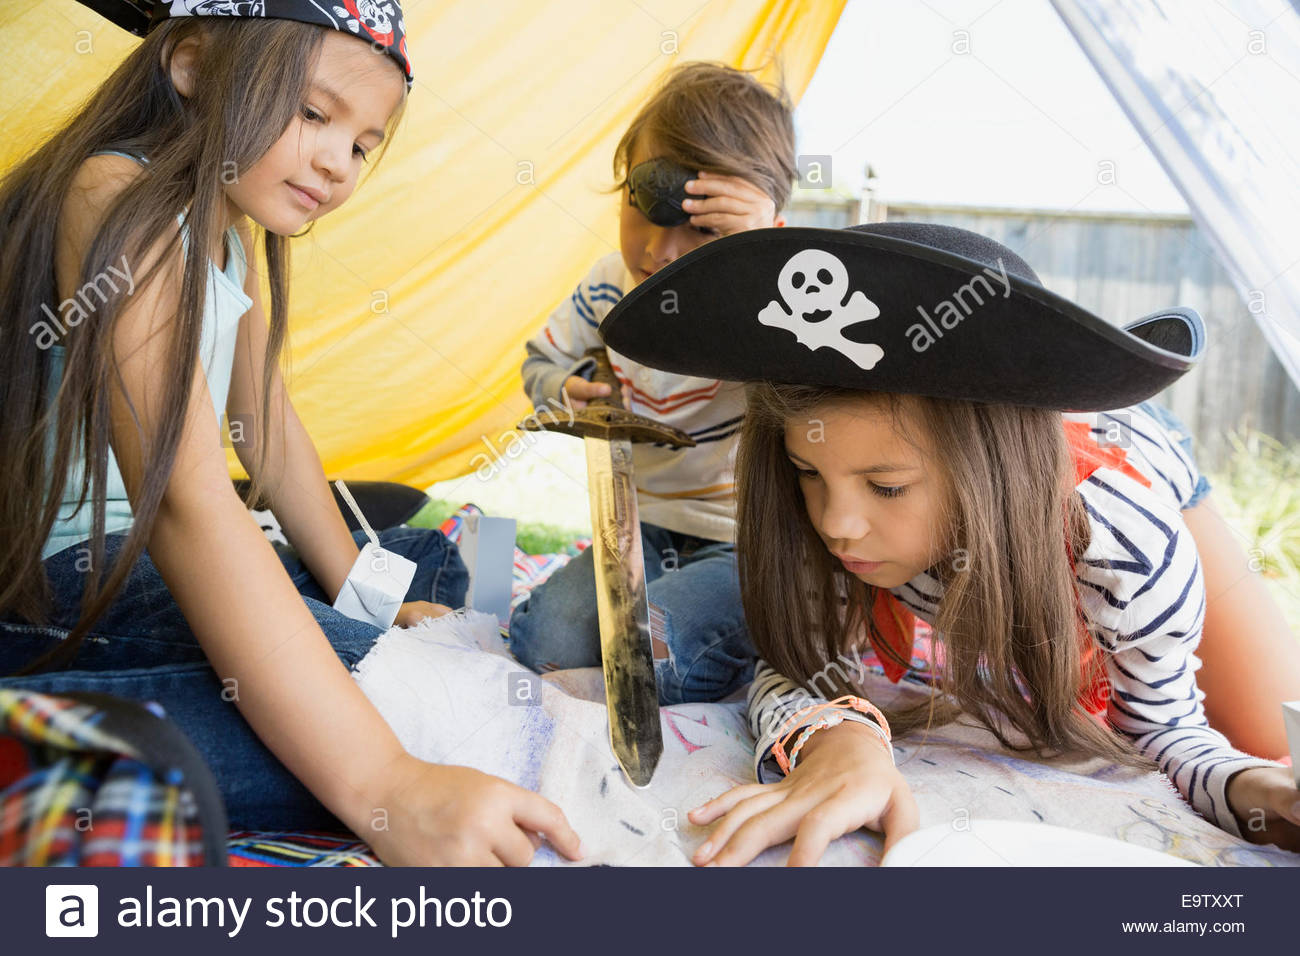 Children playing pirates and viewing treasure map - Stock Image